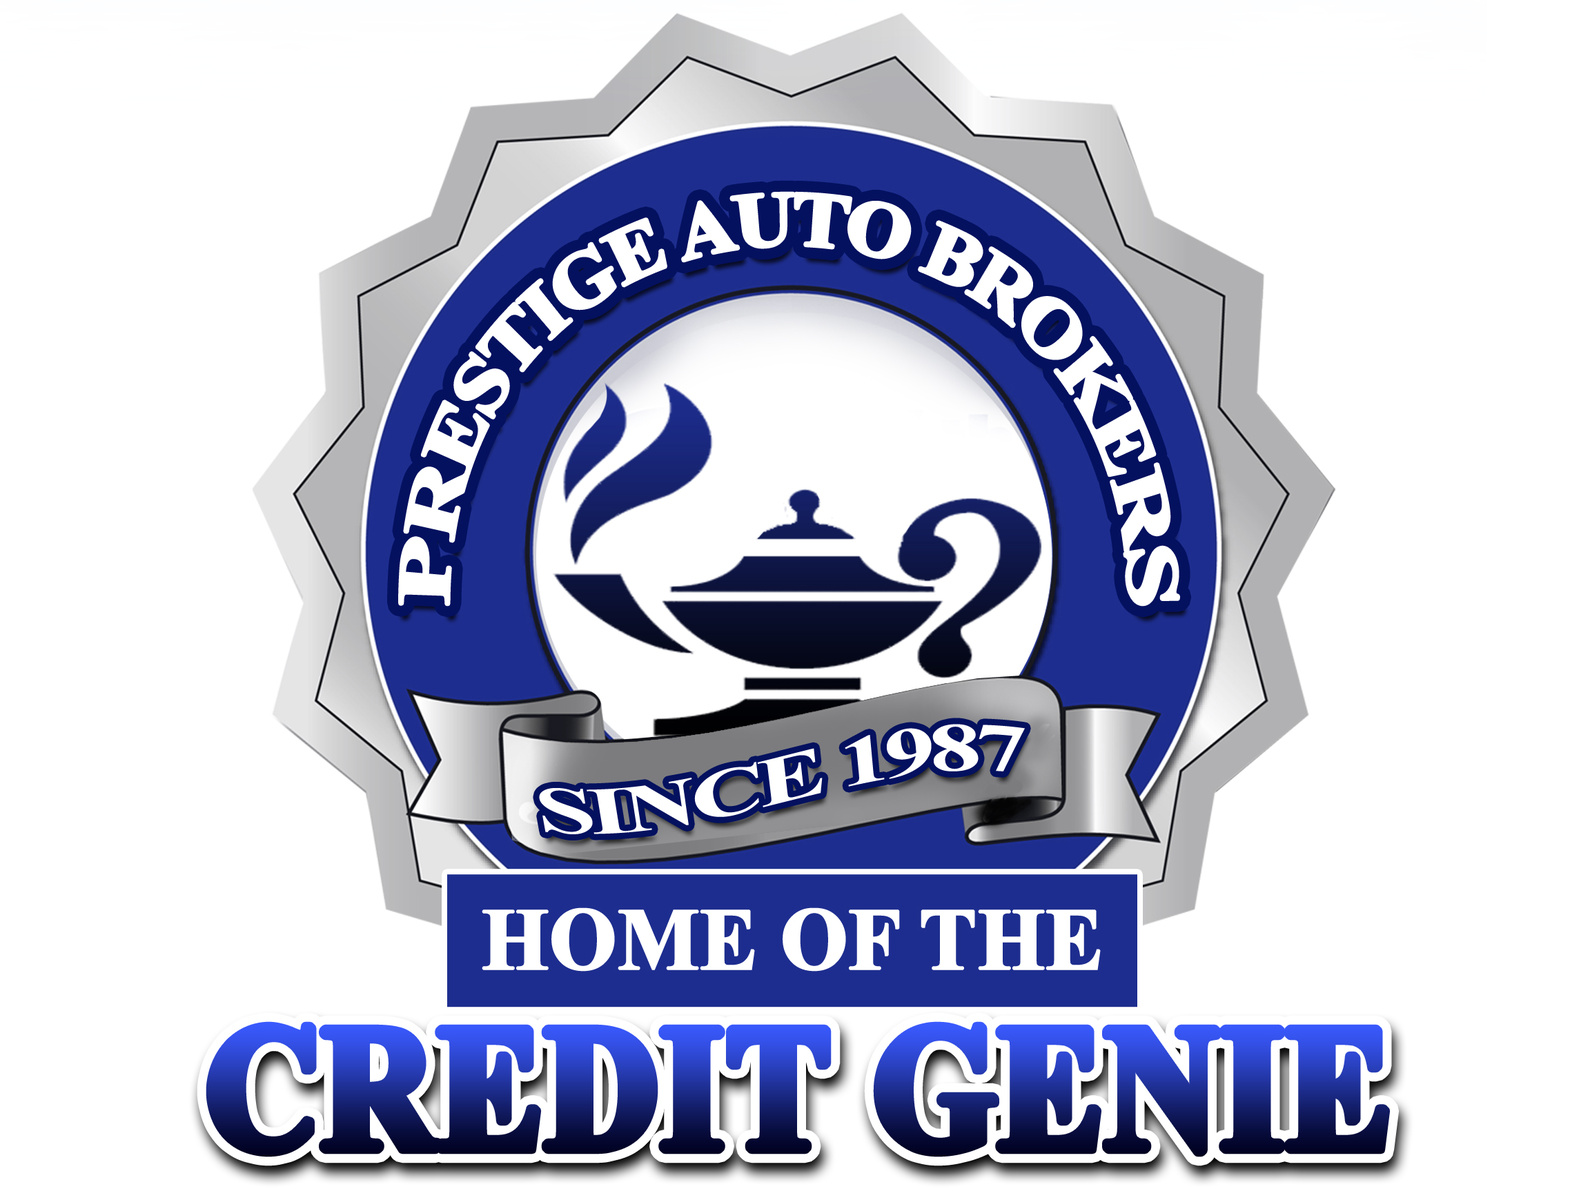 Infiniti Dealers In Va >> Prestige Auto Brokers - Portsmouth, VA: Read Consumer ...